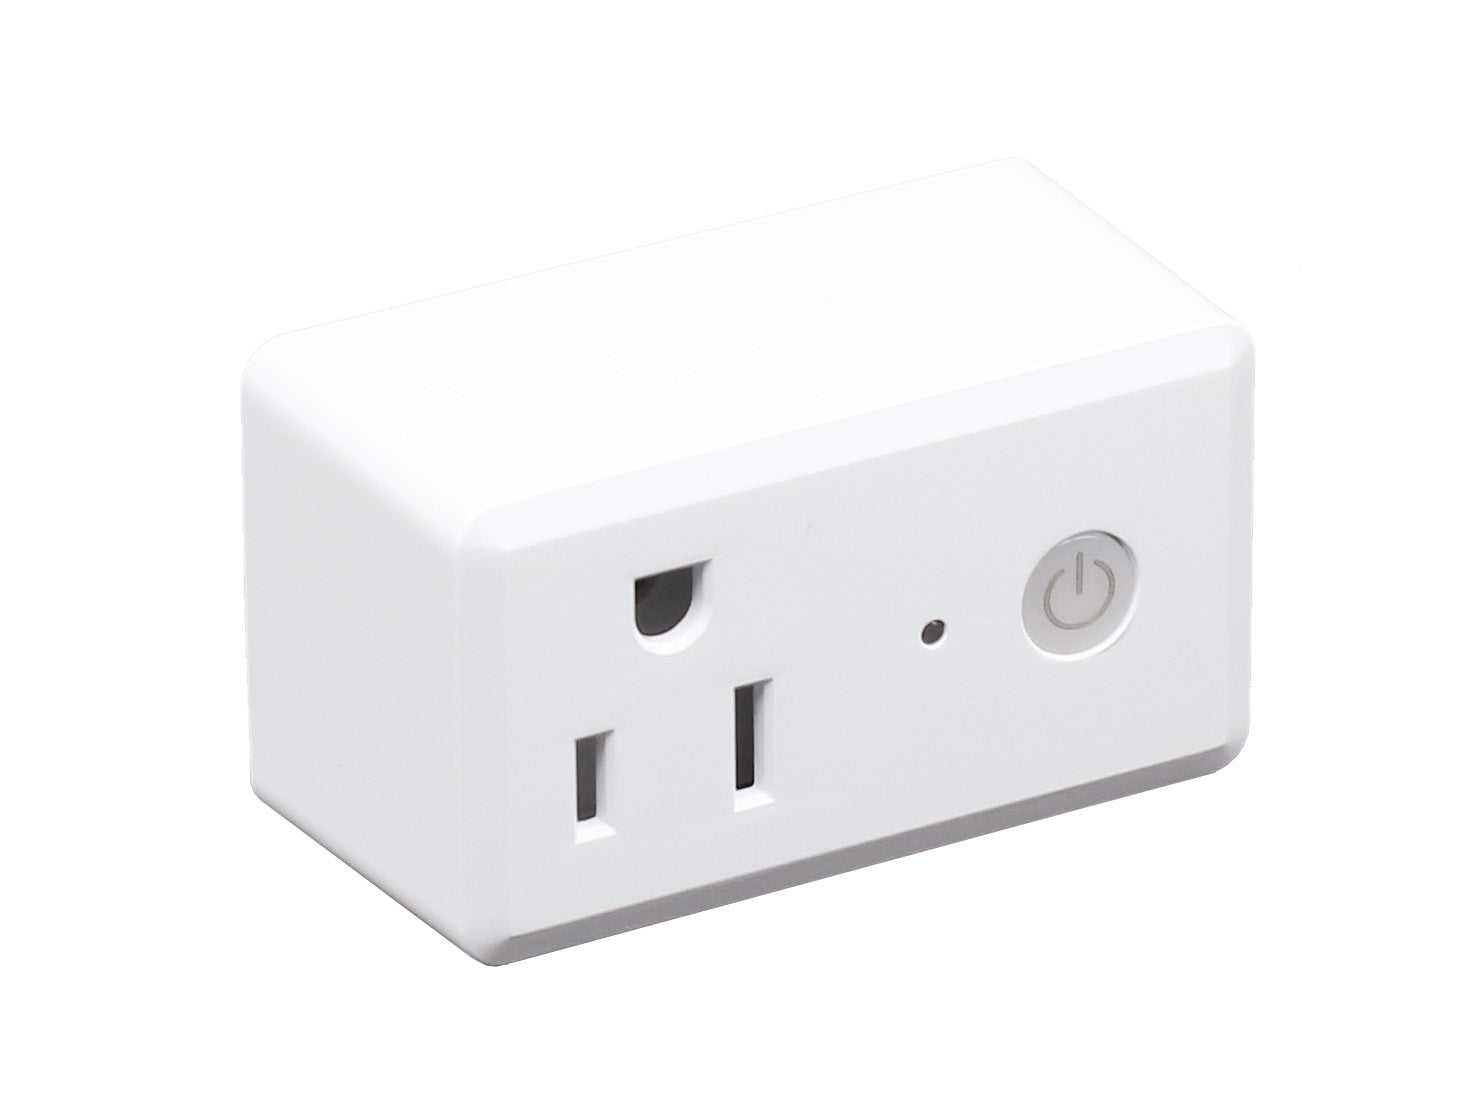 QPlus Smart Plug Socket (WiFi - No Hub) Alexa and Google Voice Control, App Control, Timer Function, FCC and cUL Certified